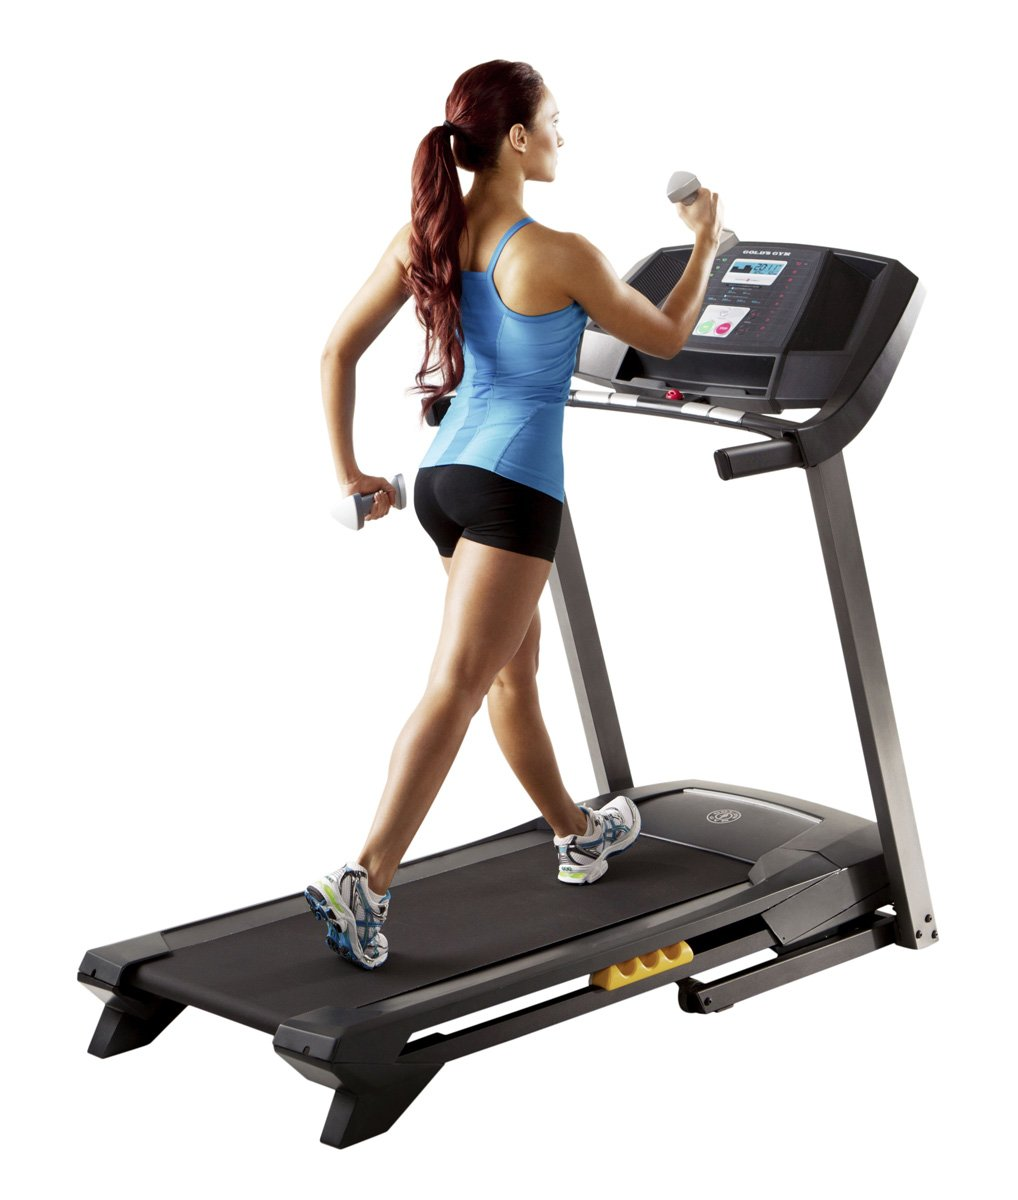 Amazon.com : Gold's Gym Trainer 410 Treadmill : Exercise Treadmills :  Sports & Outdoors